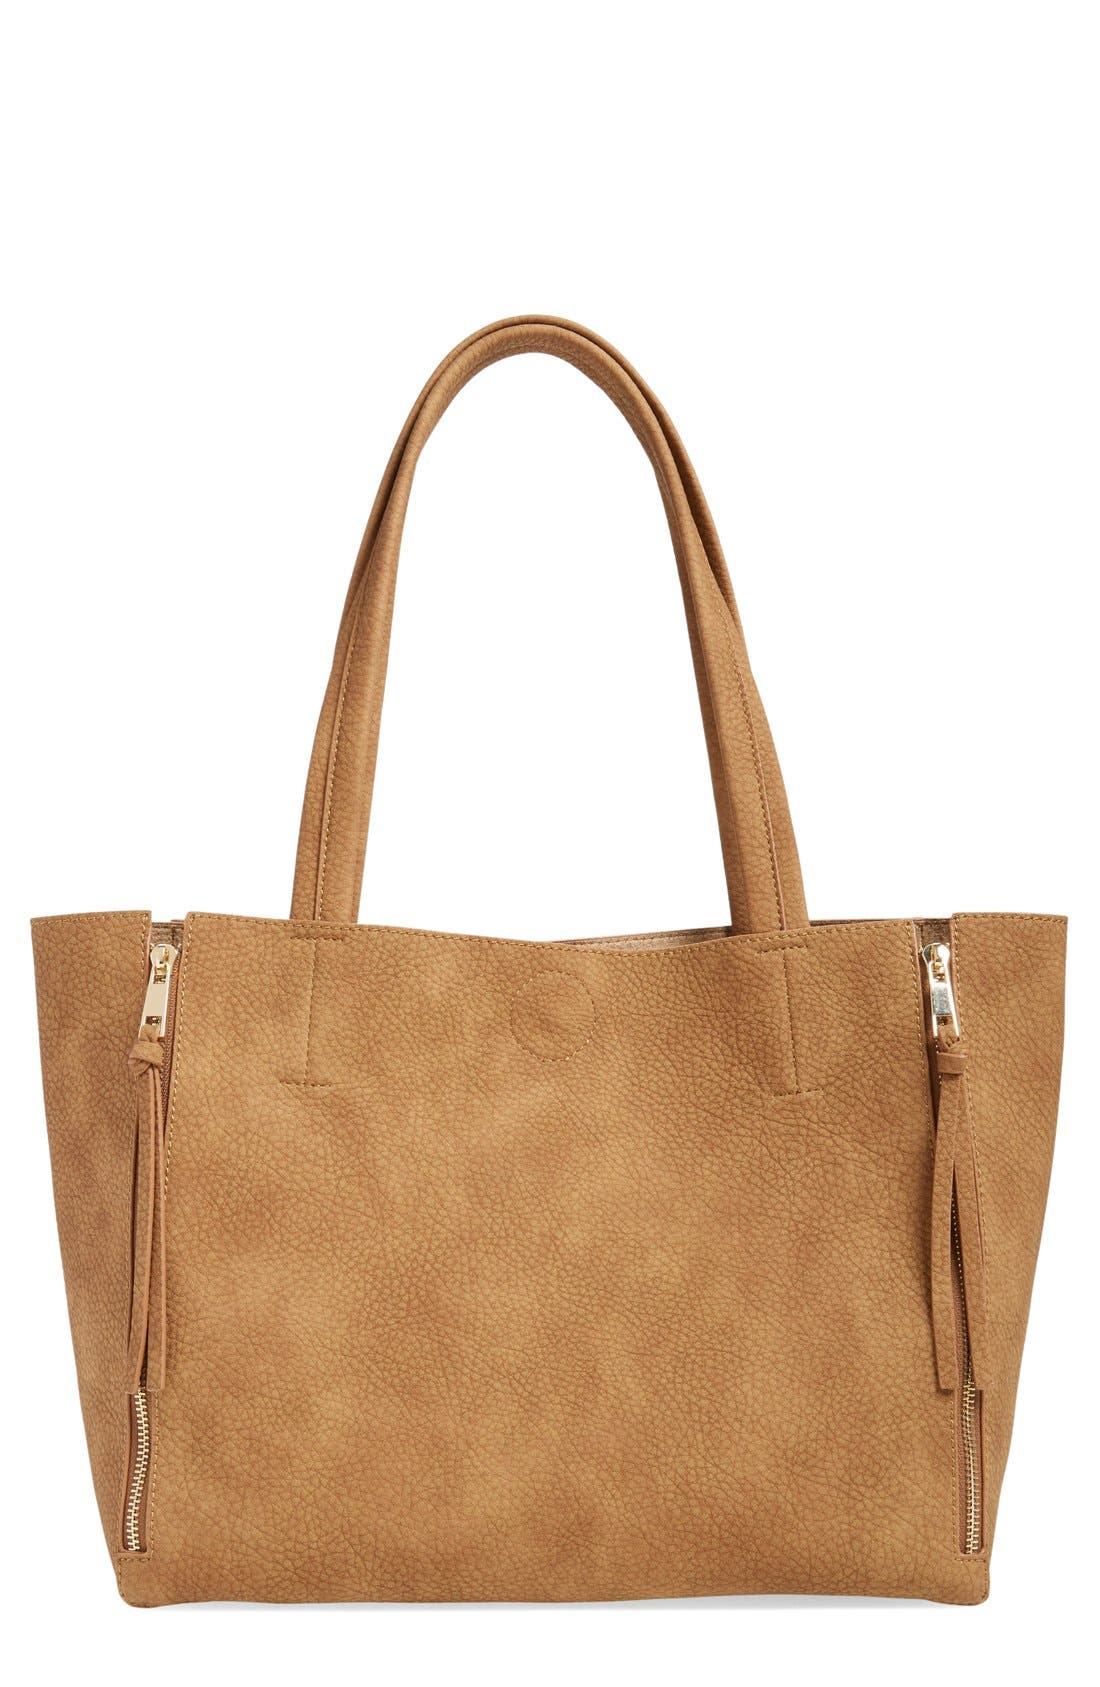 Alternate Image 1 Selected - BP. Zip Detail Faux Leather Tote